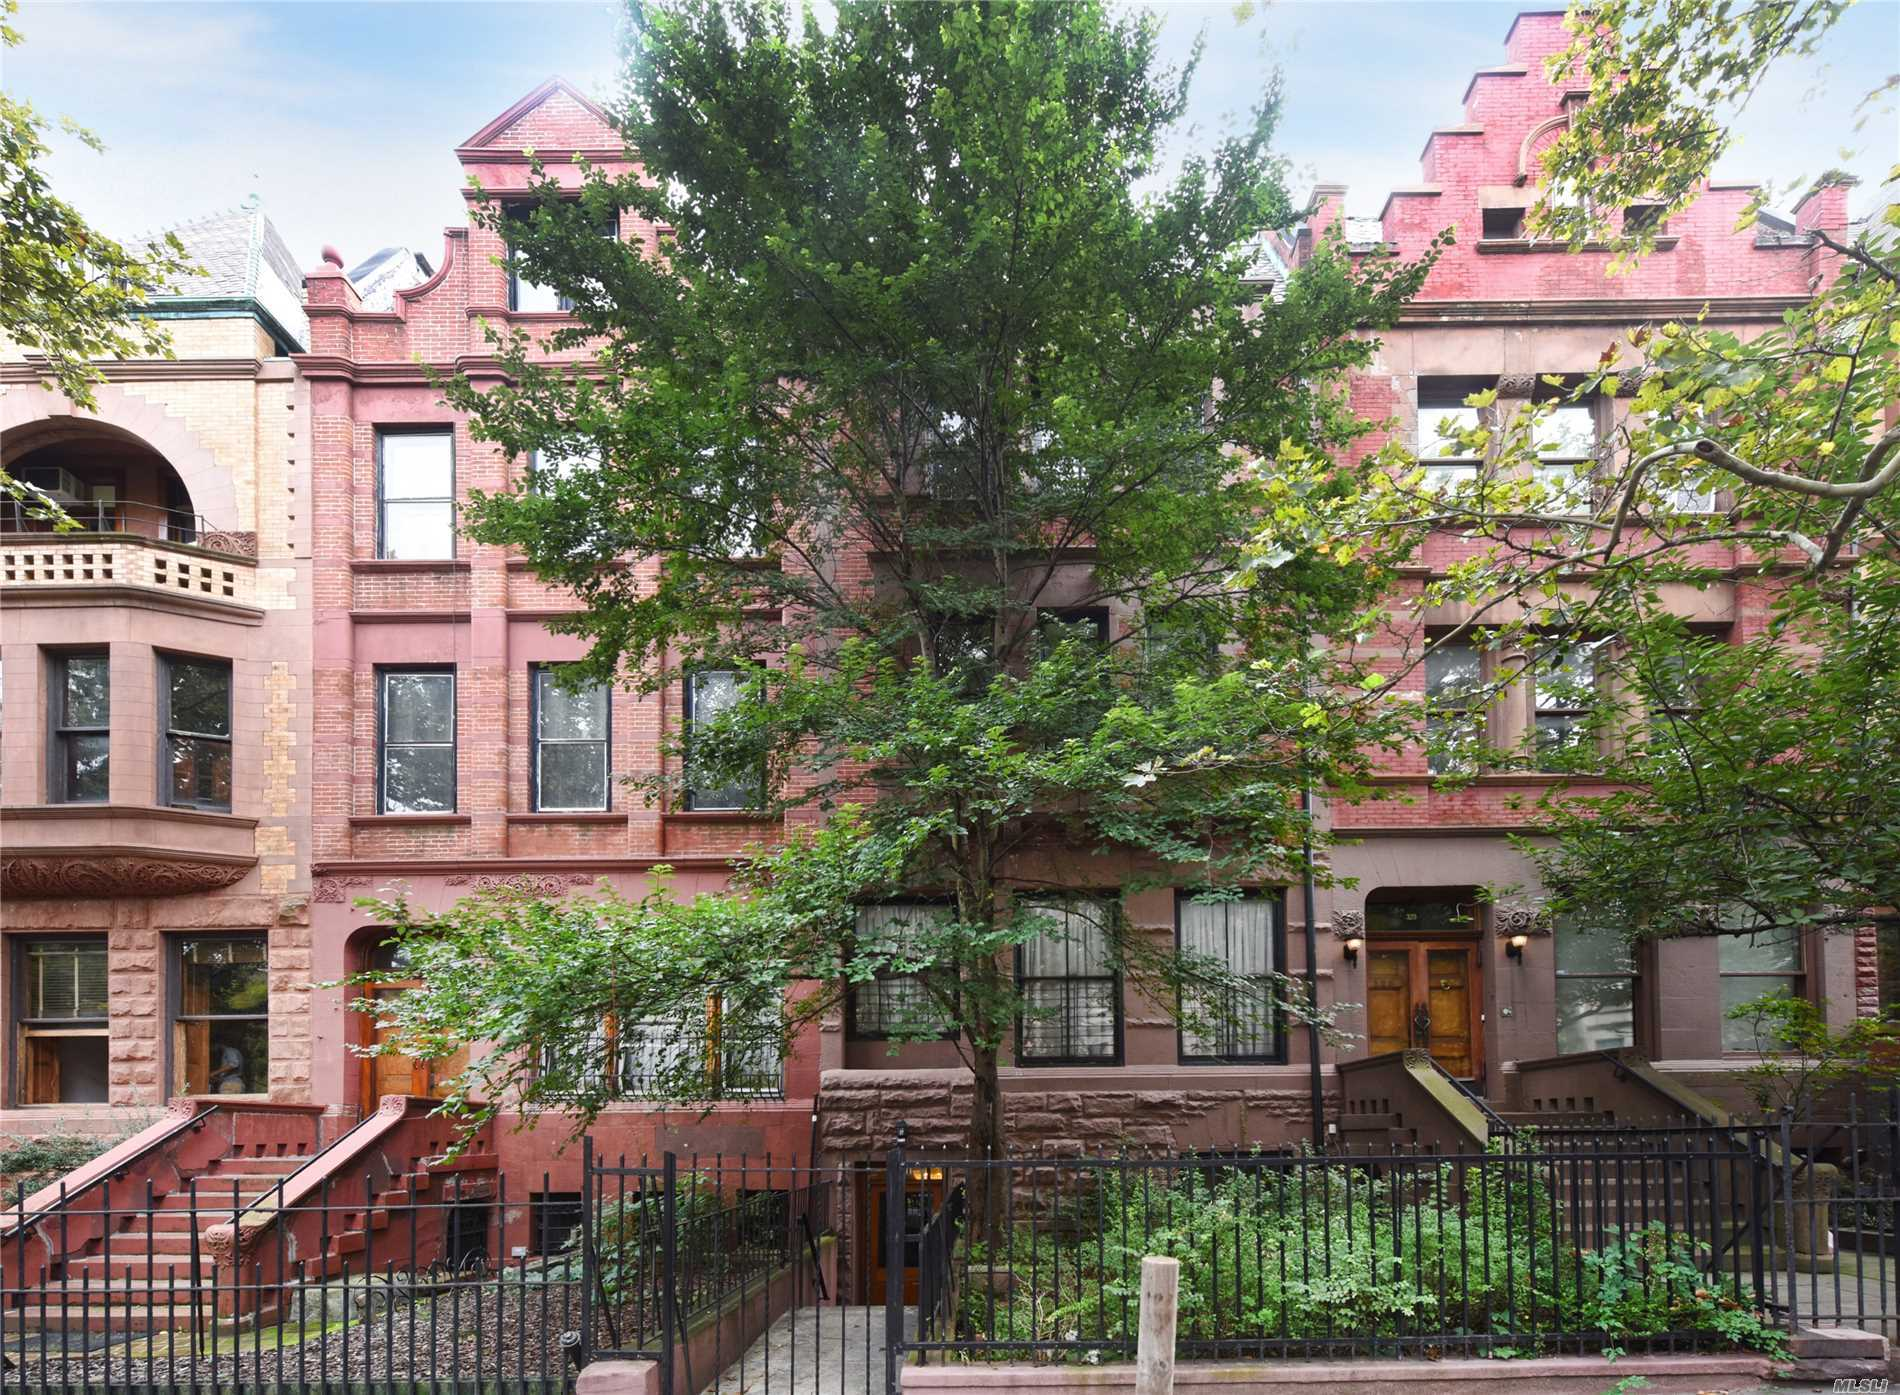 Landmark 3 Family Building With Many Updates. 2nd Floor Unit Gets $3K Per Month. Owners Occupy 1st Floor And 3rd Floor Vacant. Tenants Pay Electric. Ll Meter. Updated Heat And Roof.